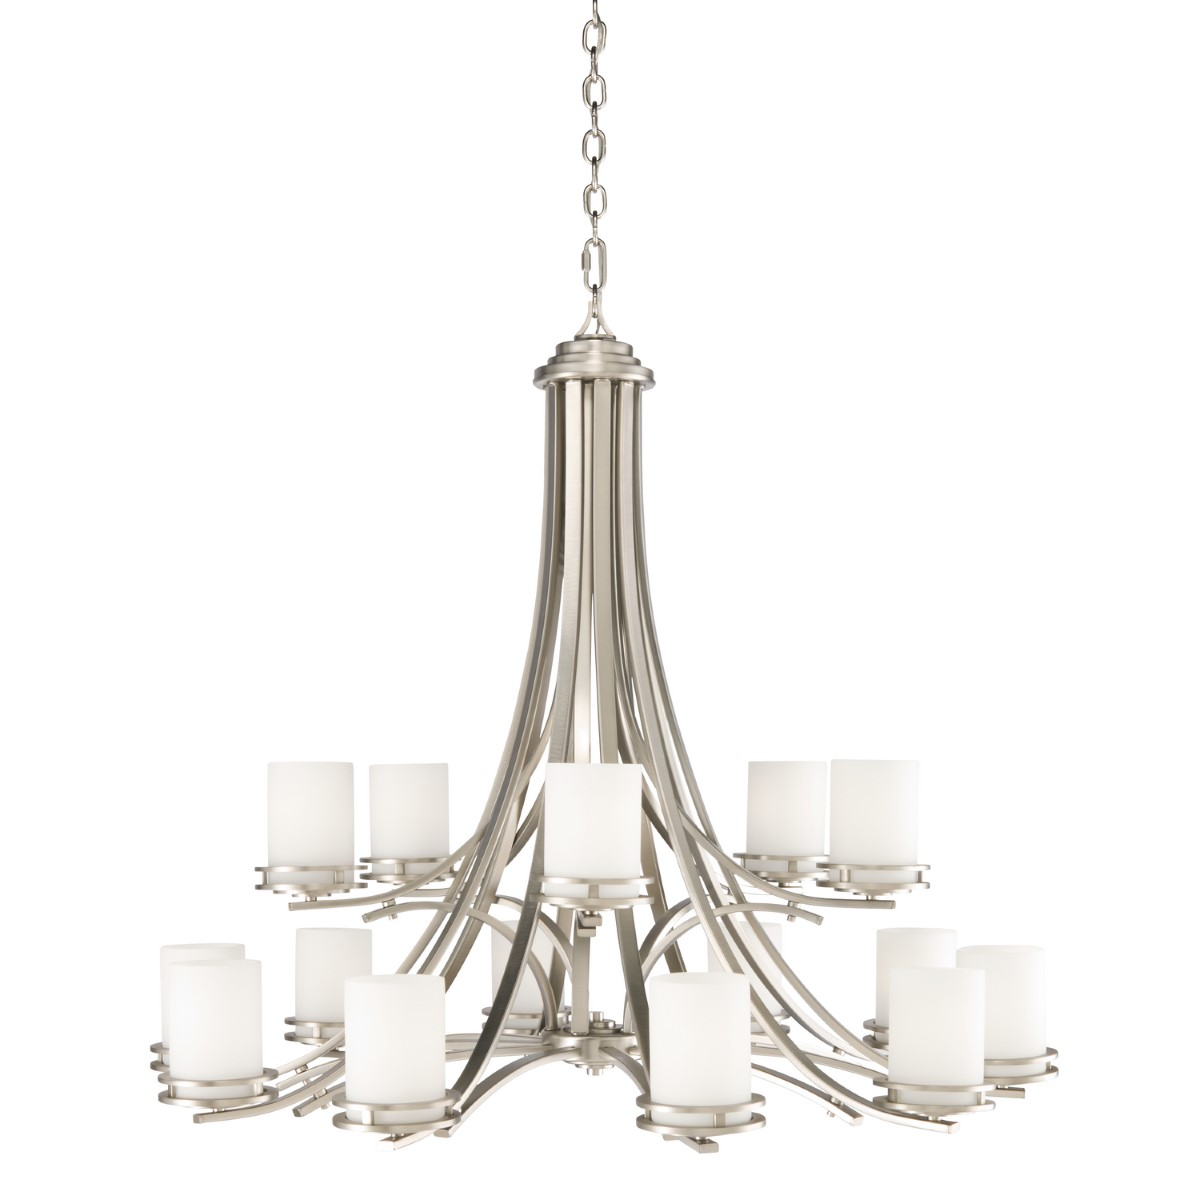 Kichler Hendrik Chandelier with Satin Etched Cased Opal Shade - Brushed Nickel (1675NI)